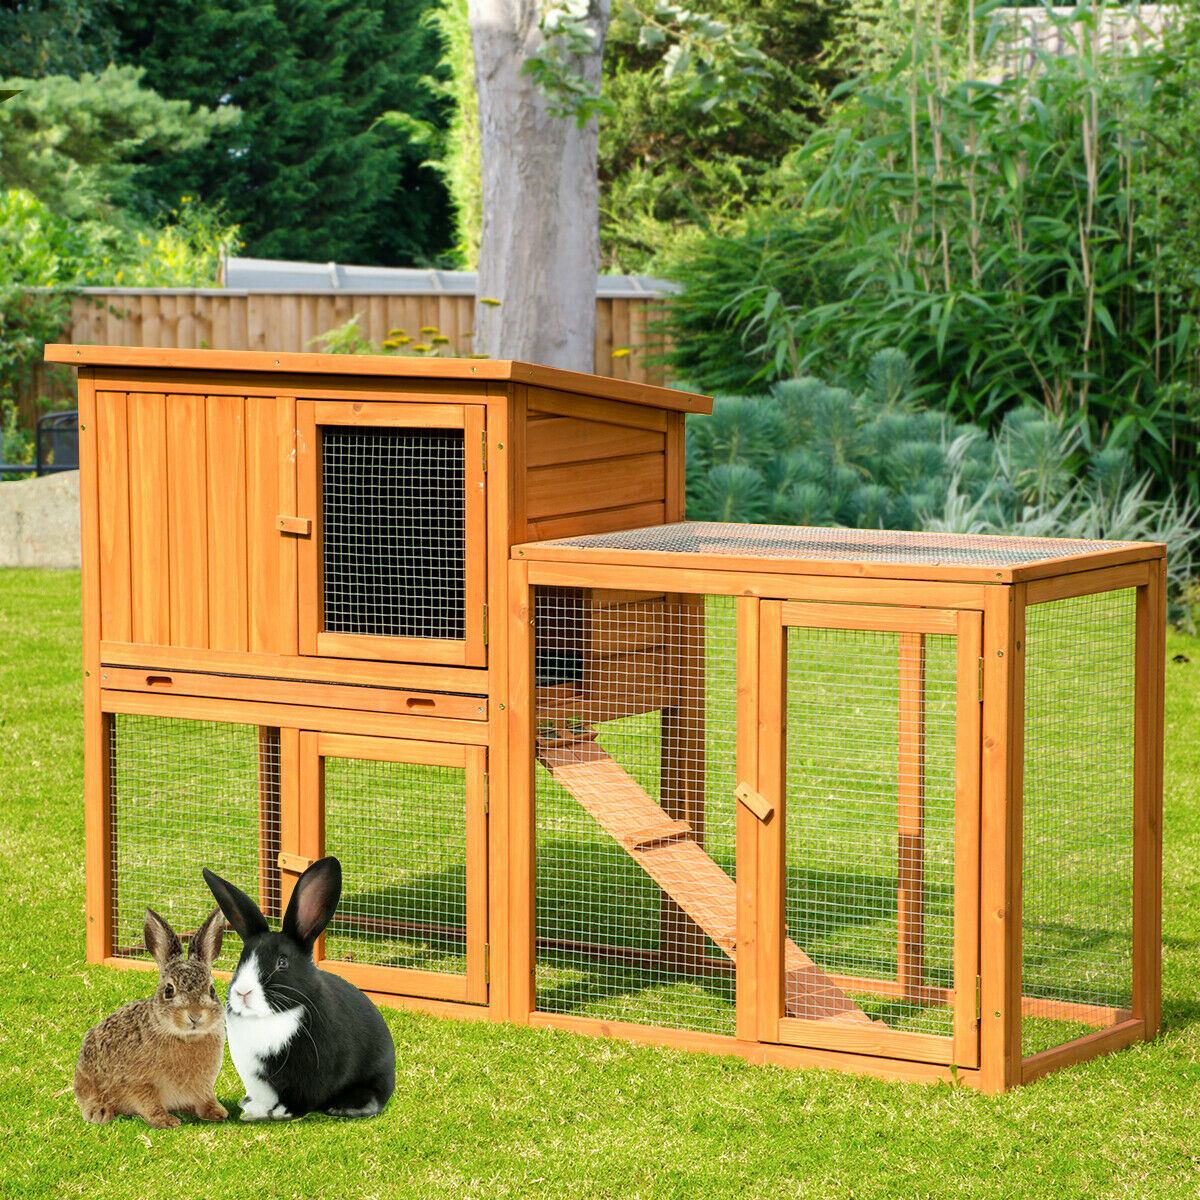 """AECOJOY 54.3"""" Wooden Rabbit Hutch Chicken Coop Small Animal Pet House w/ Run Cages, Hutches & Enclosure"""